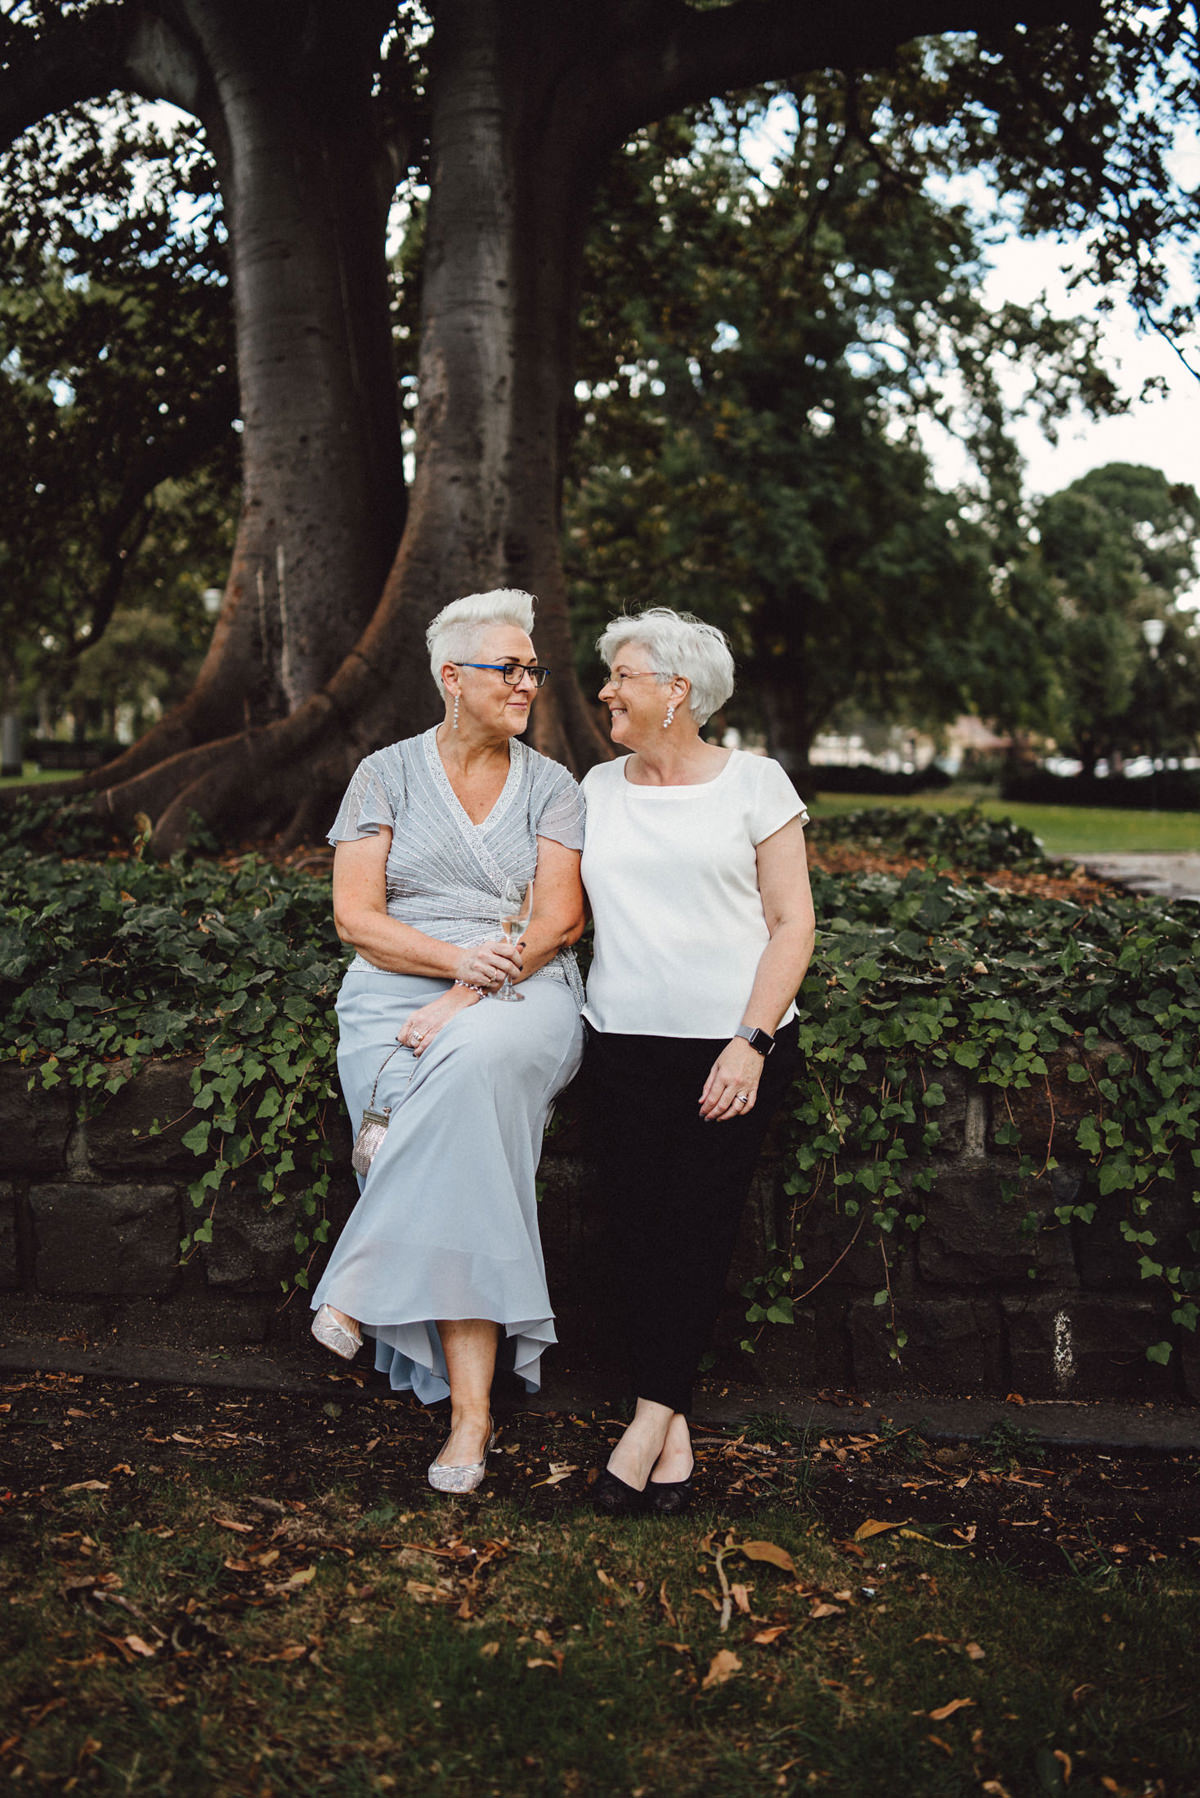 Michelle & Rhonda's Simple & Elegant Melbourne Bowling Club Wedding